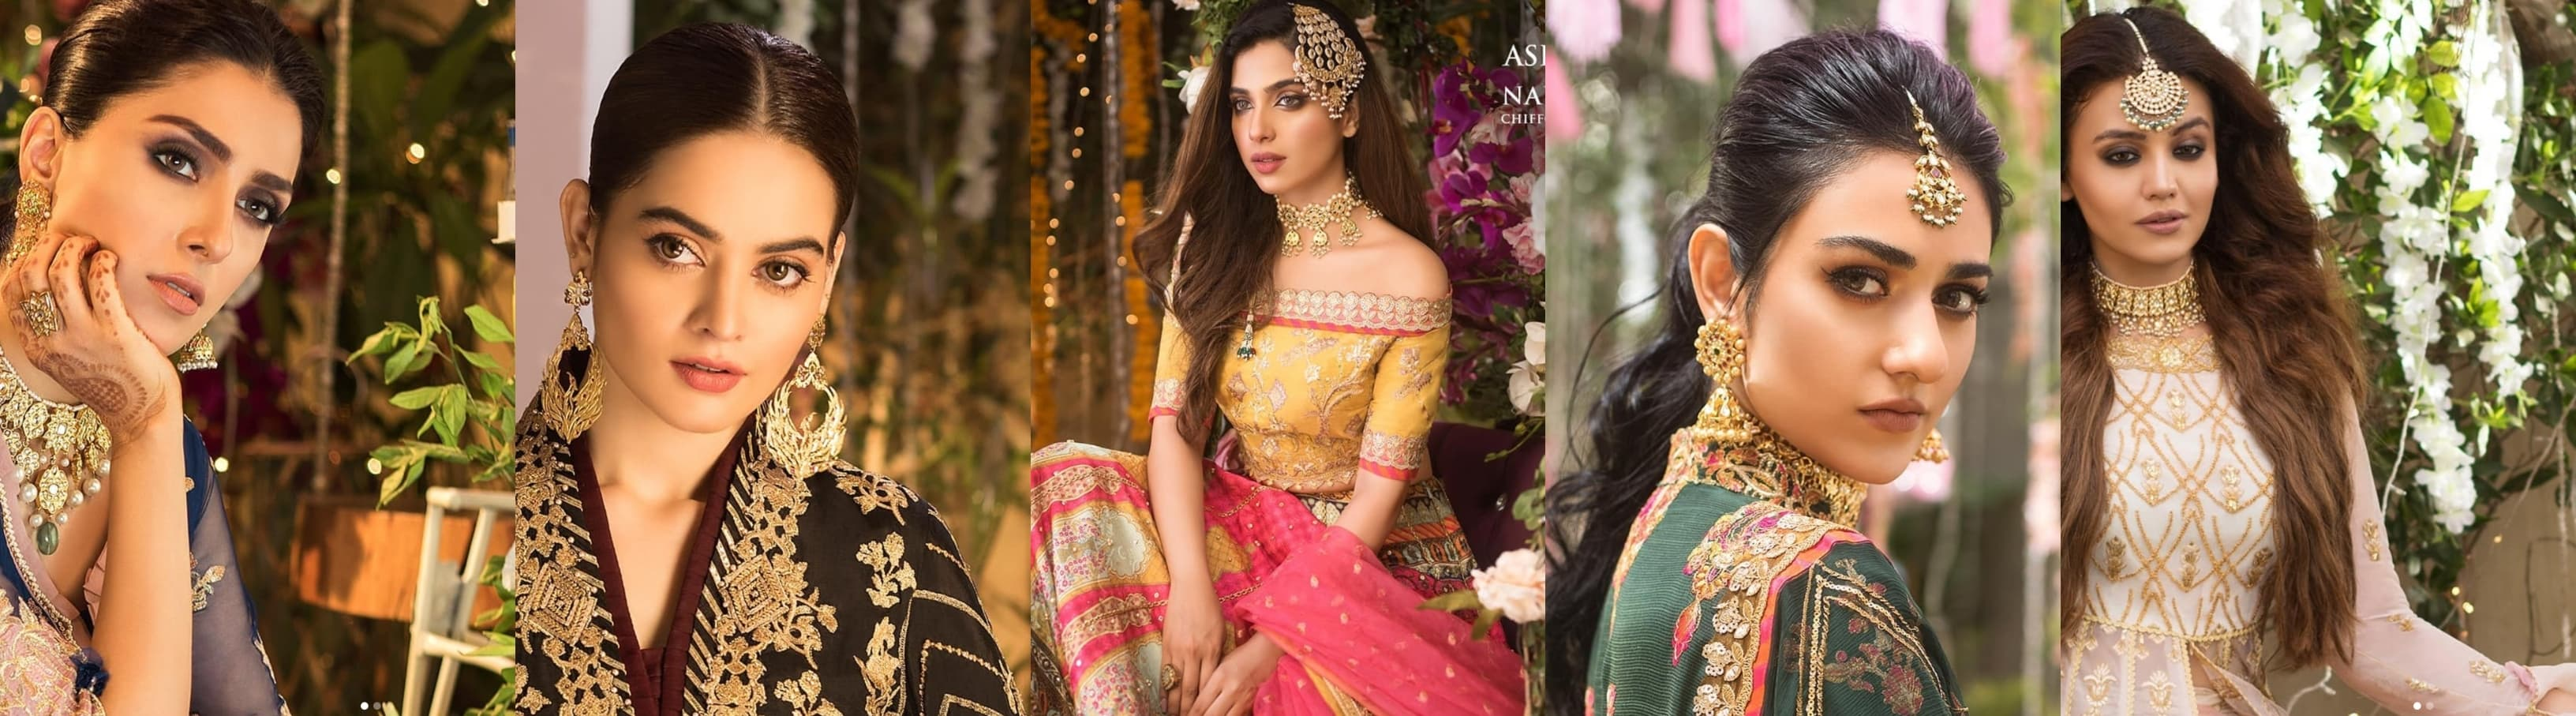 Asim Jofa's all-out extravagant shoot for his unstitched 'Naubahar' line featuring 10 top-tier actresses.